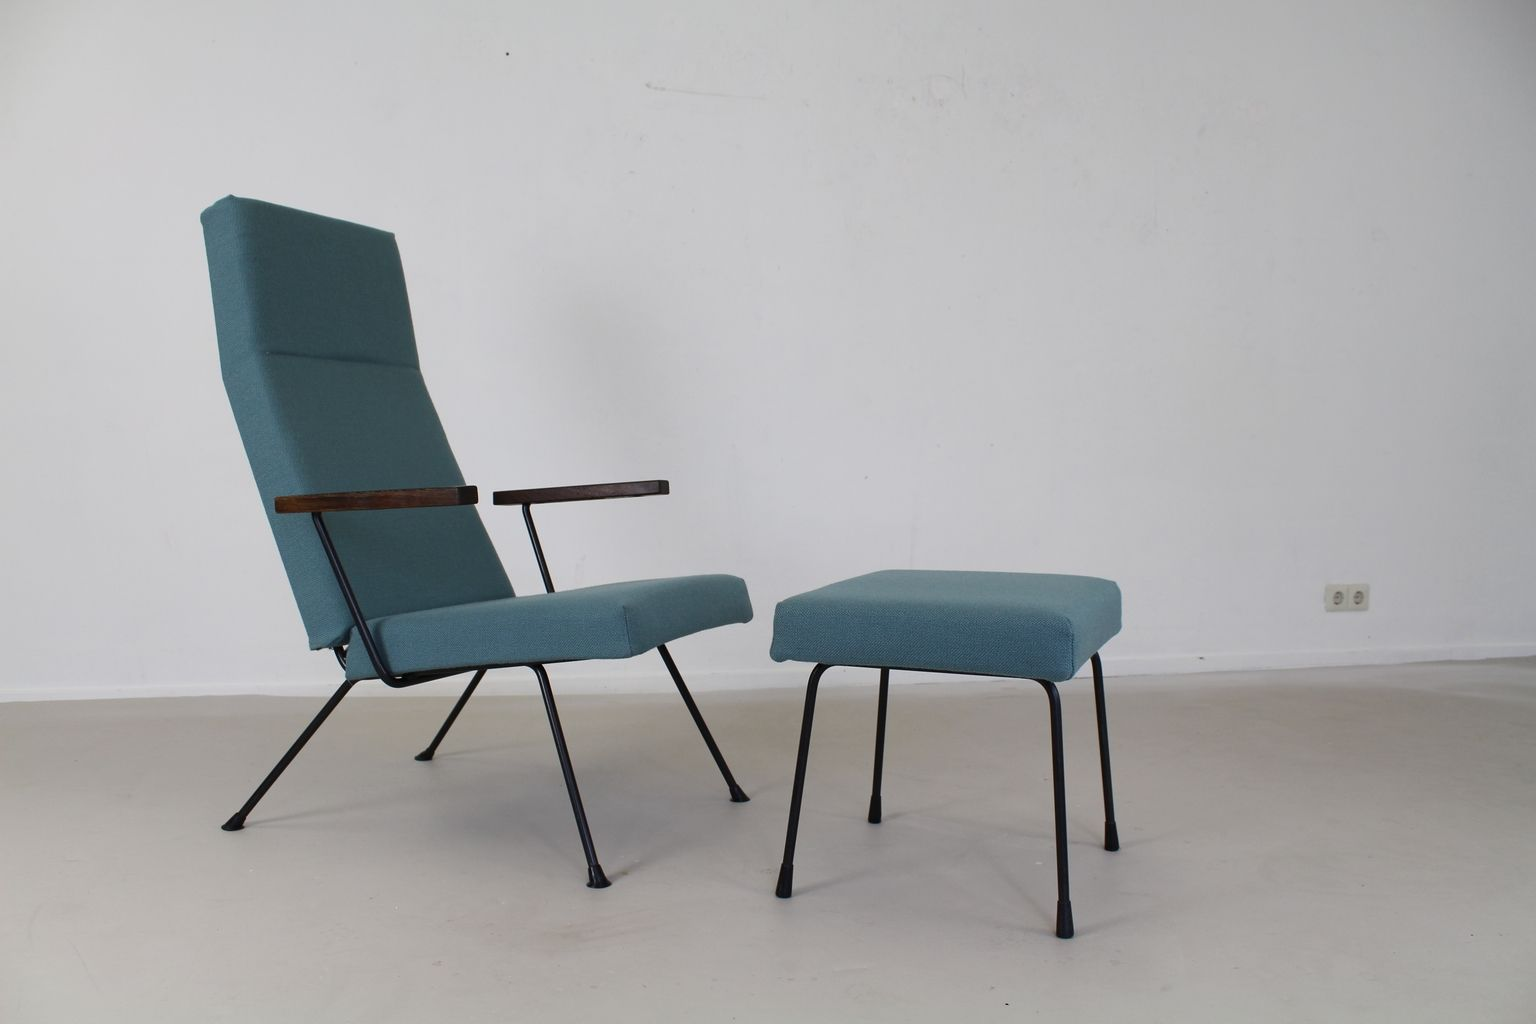 Model 1410 Lounge Chair with Ottoman by A Cordemeyer for Gispen 1965 for sa